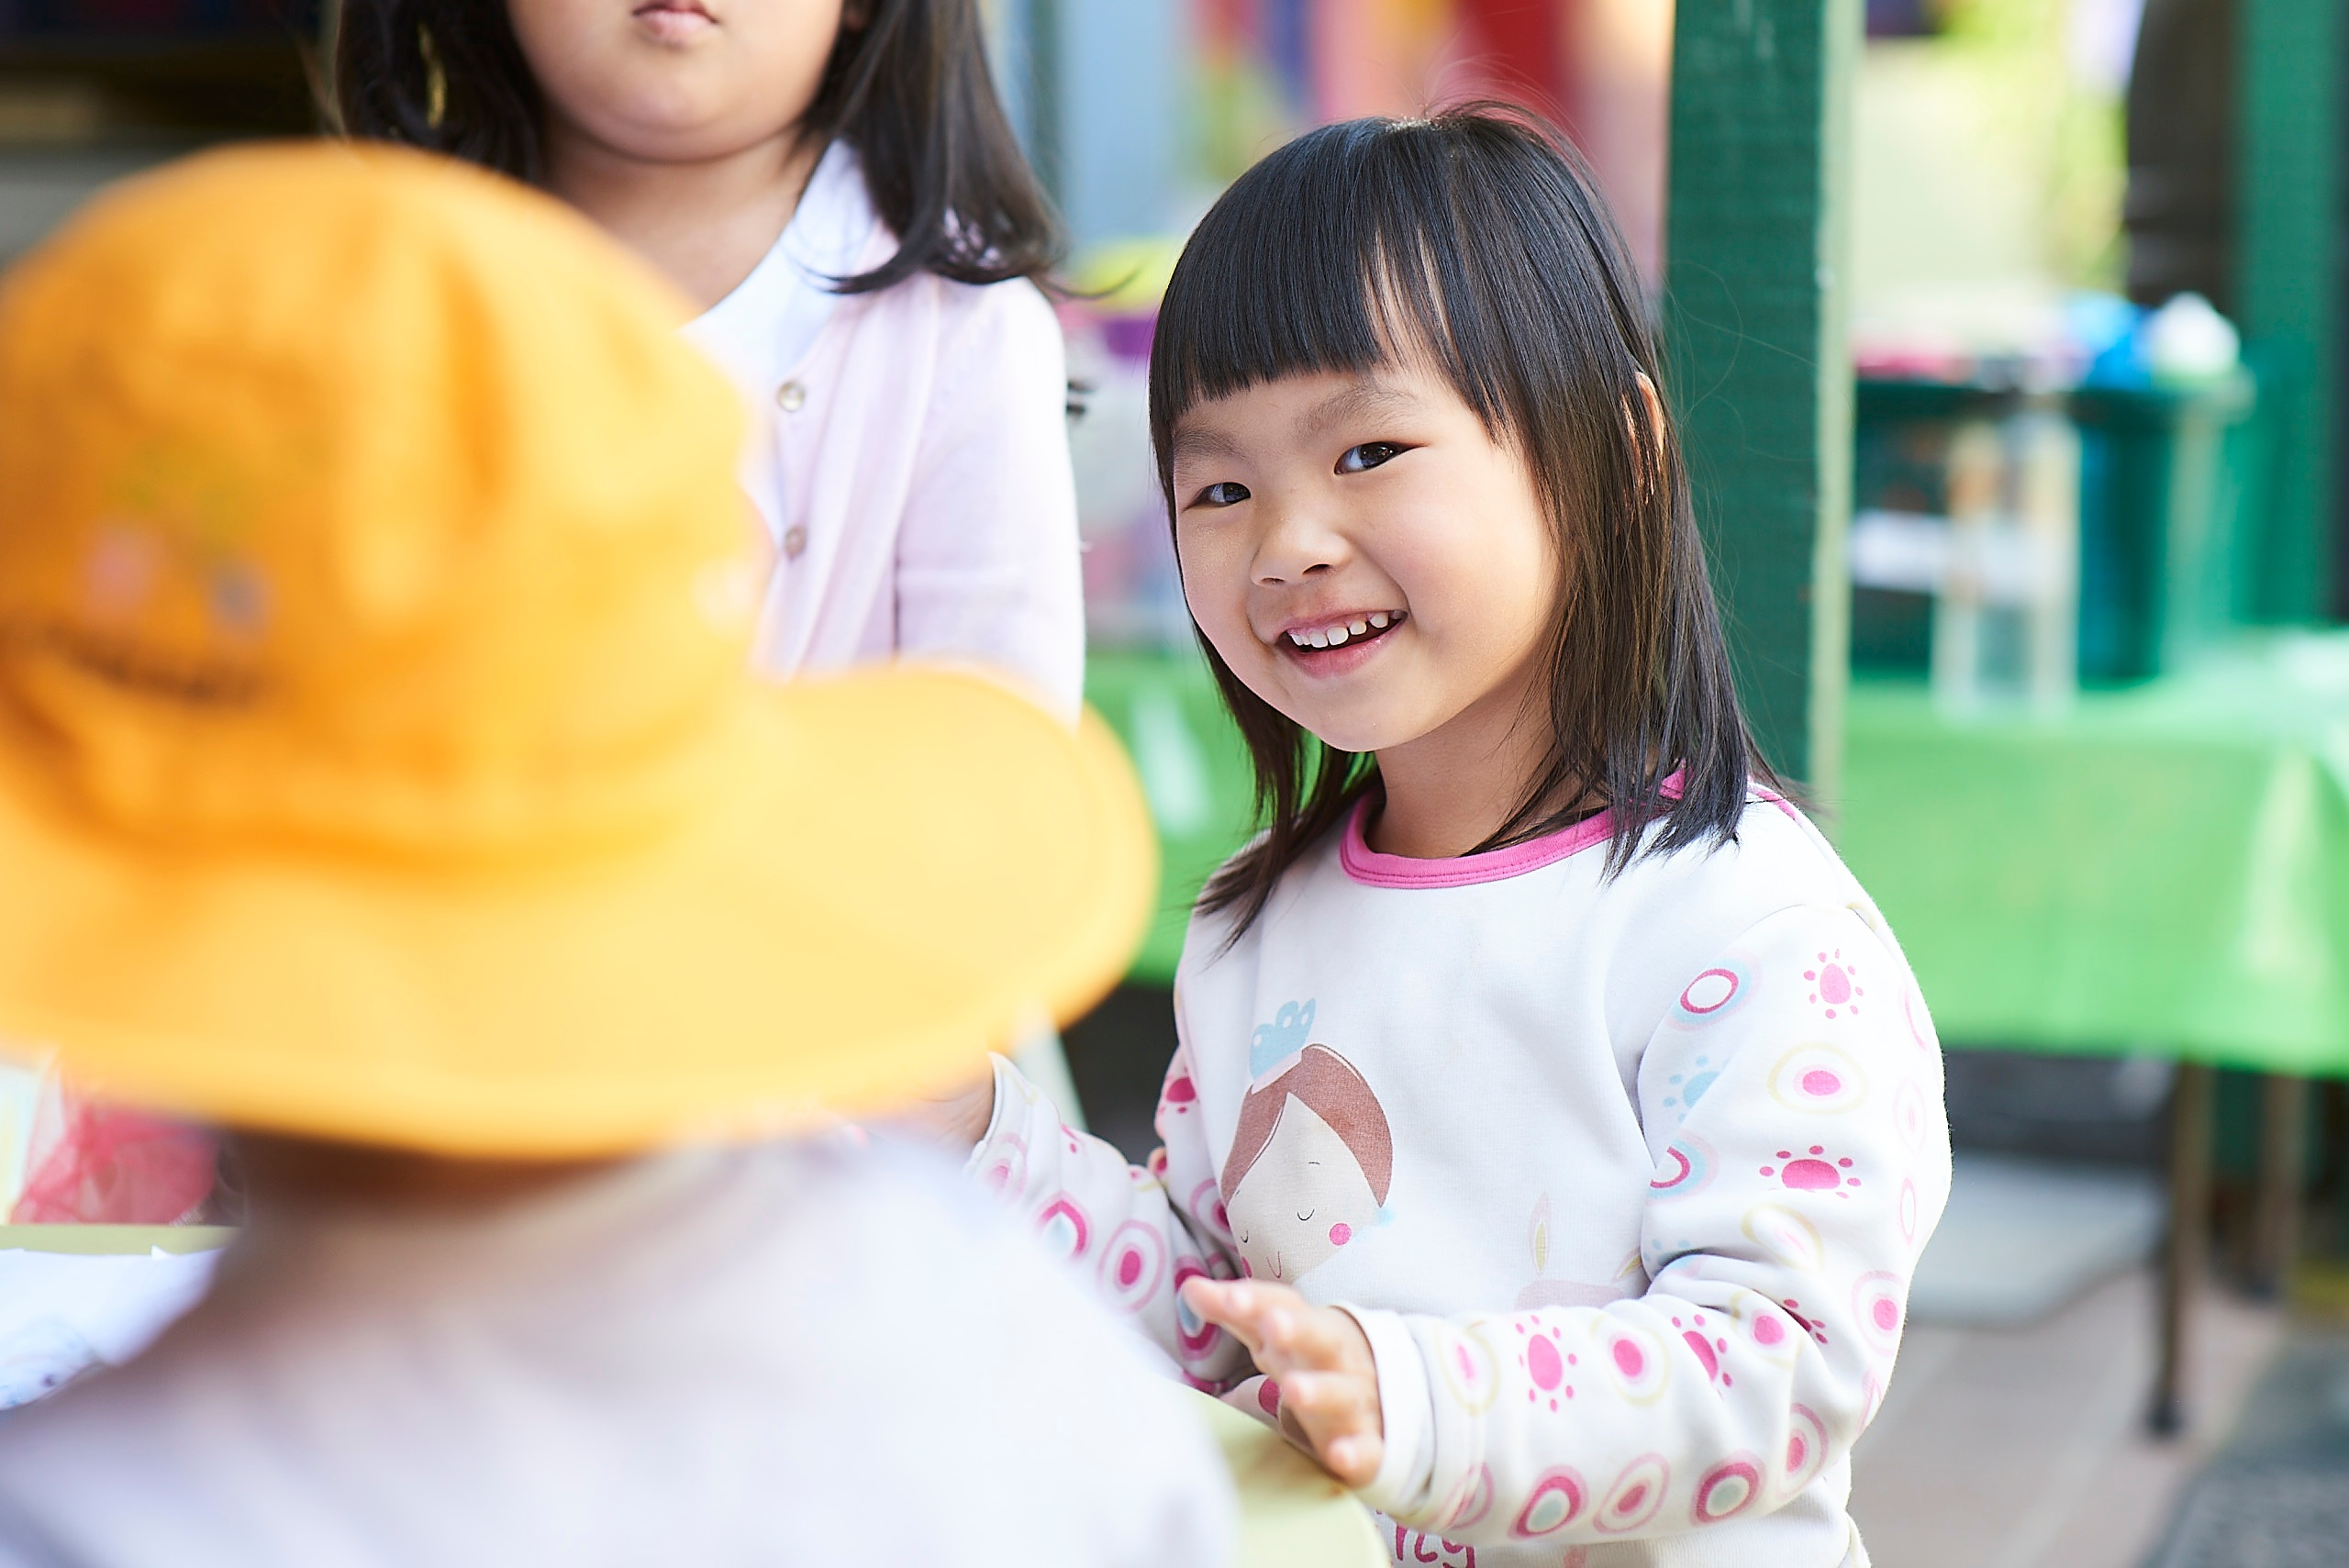 Child Care subsidy changing in July 2018